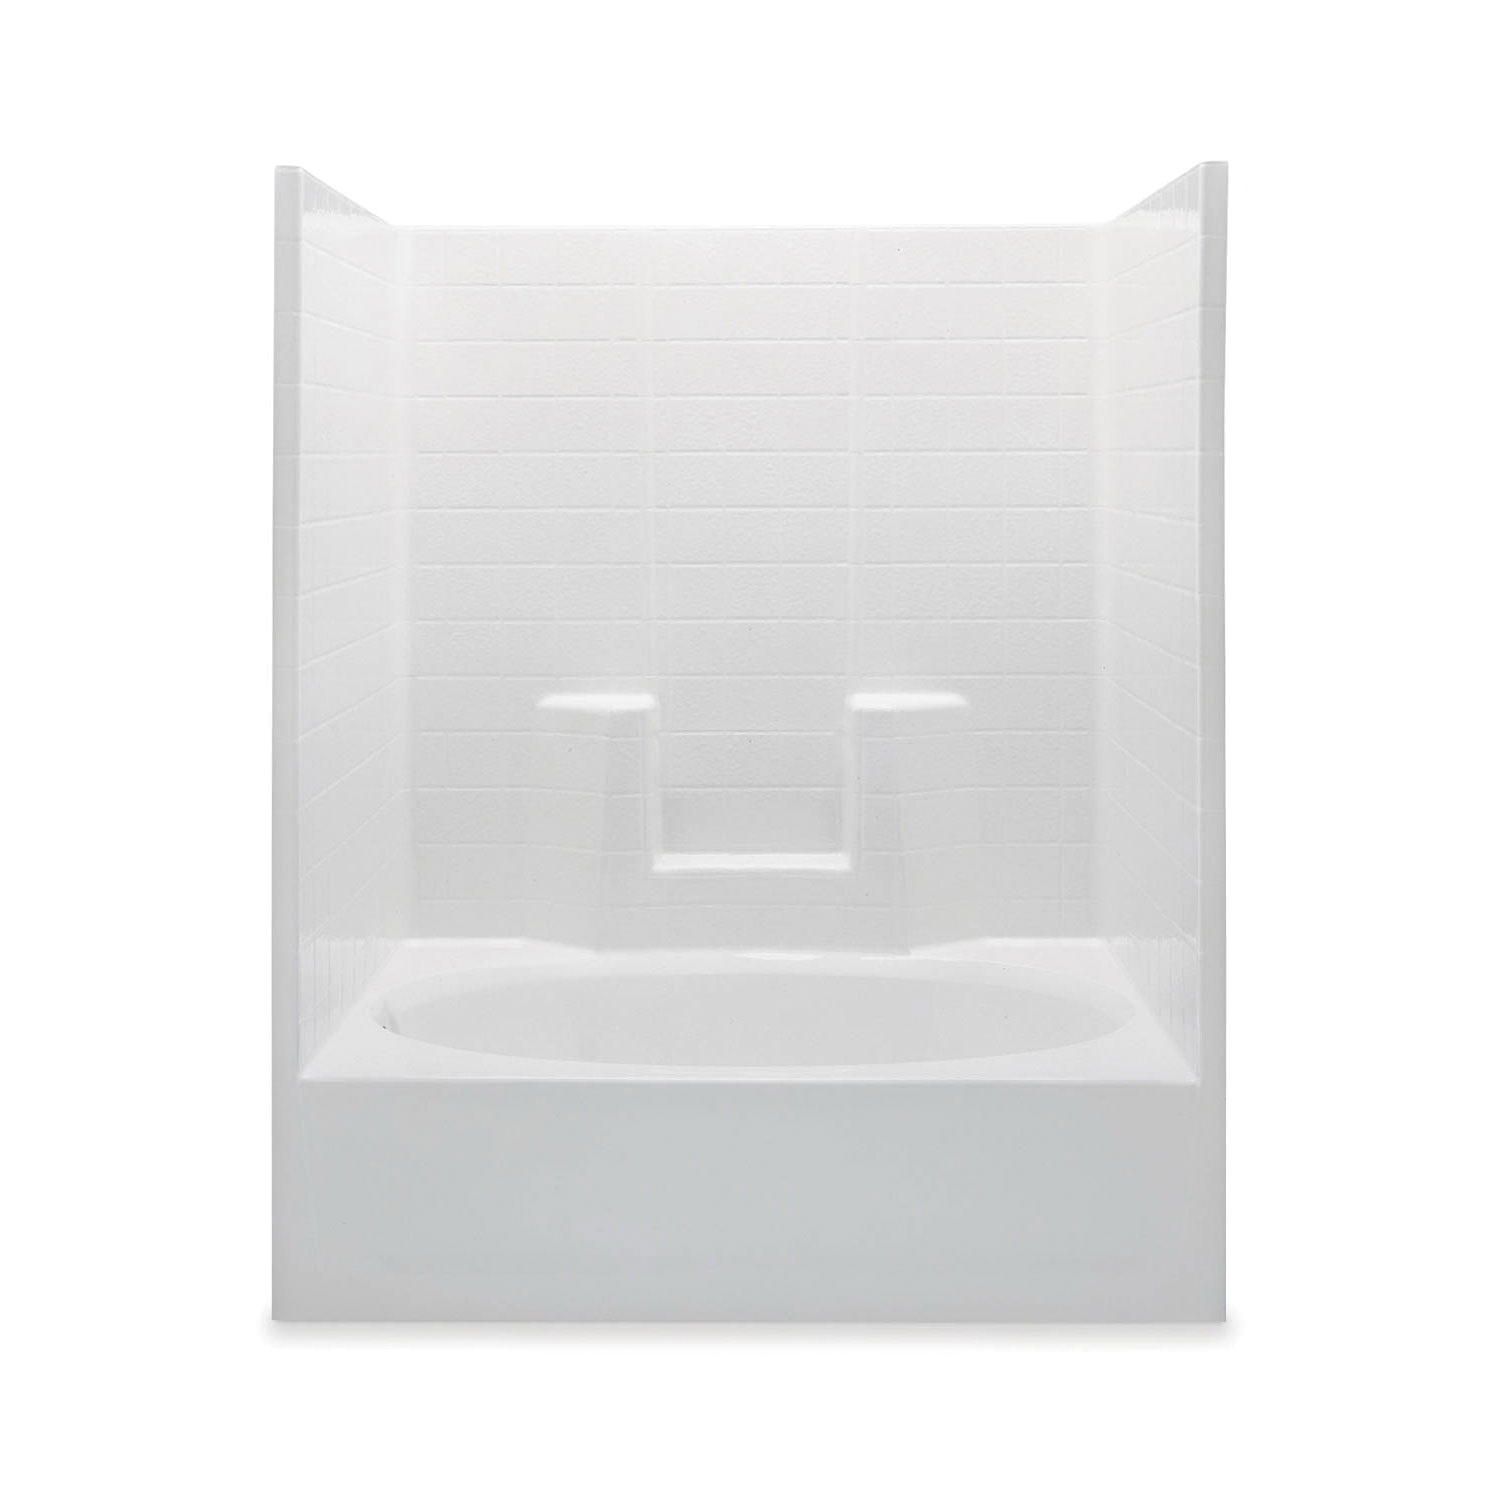 Aquatic 2603CTSR-WH Tub Shower, Everyday, 60 in W x 72 in H, Gel-Coated/White, Domestic